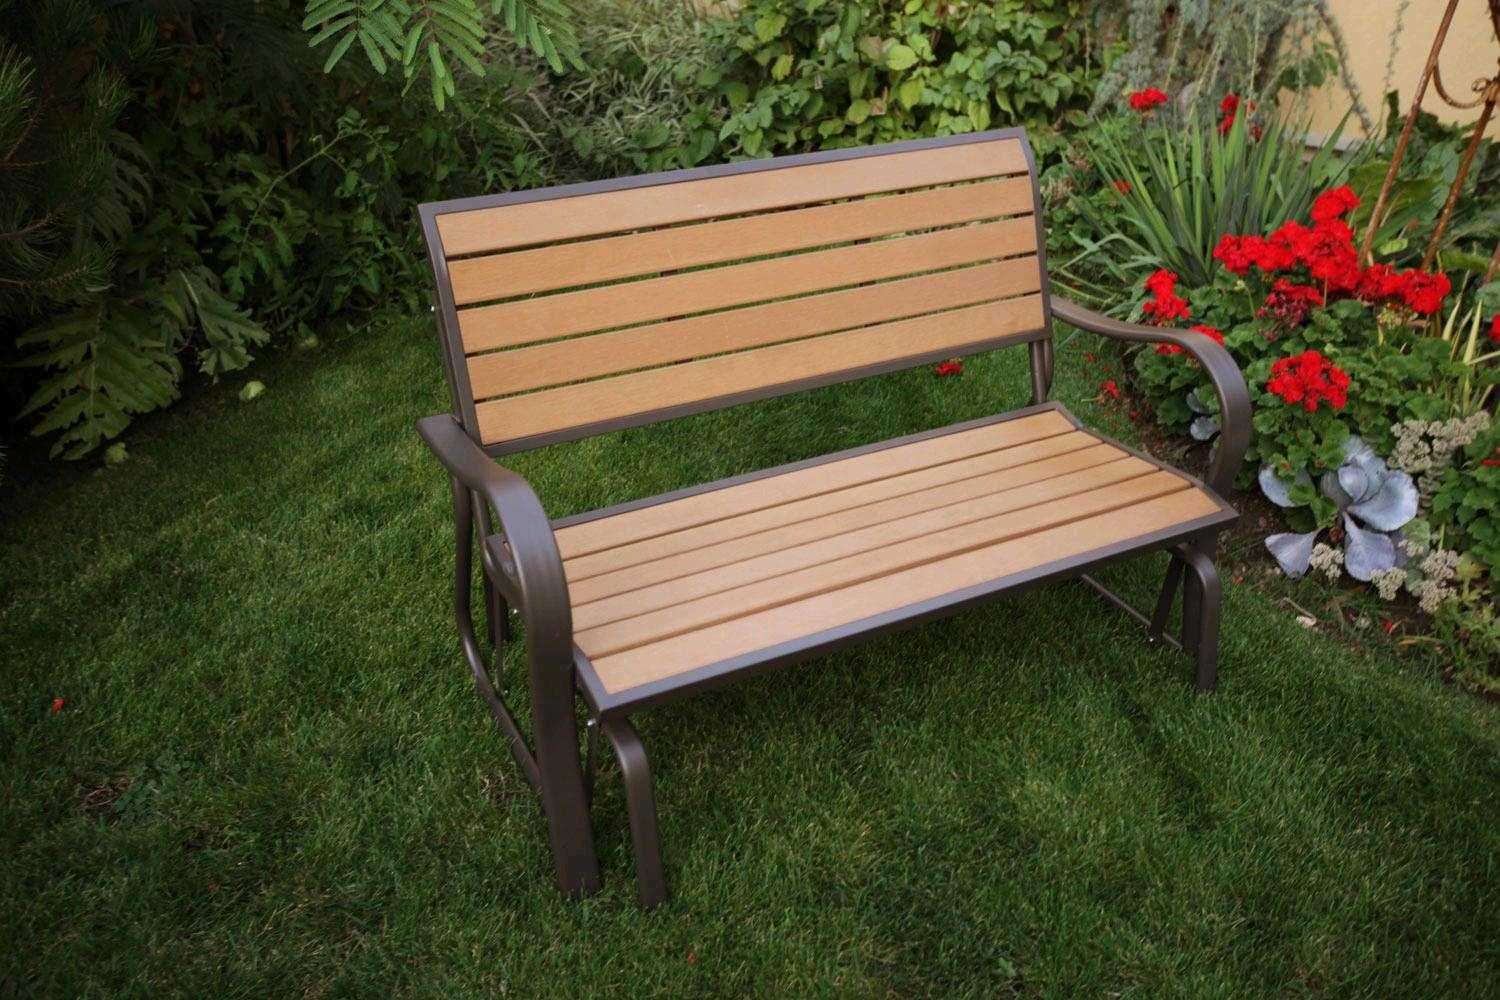 Amazon.com : Lifetime 60055 Glider Bench, 4 Feet, Faux Wood : Patio Gliders  : Garden U0026 Outdoor